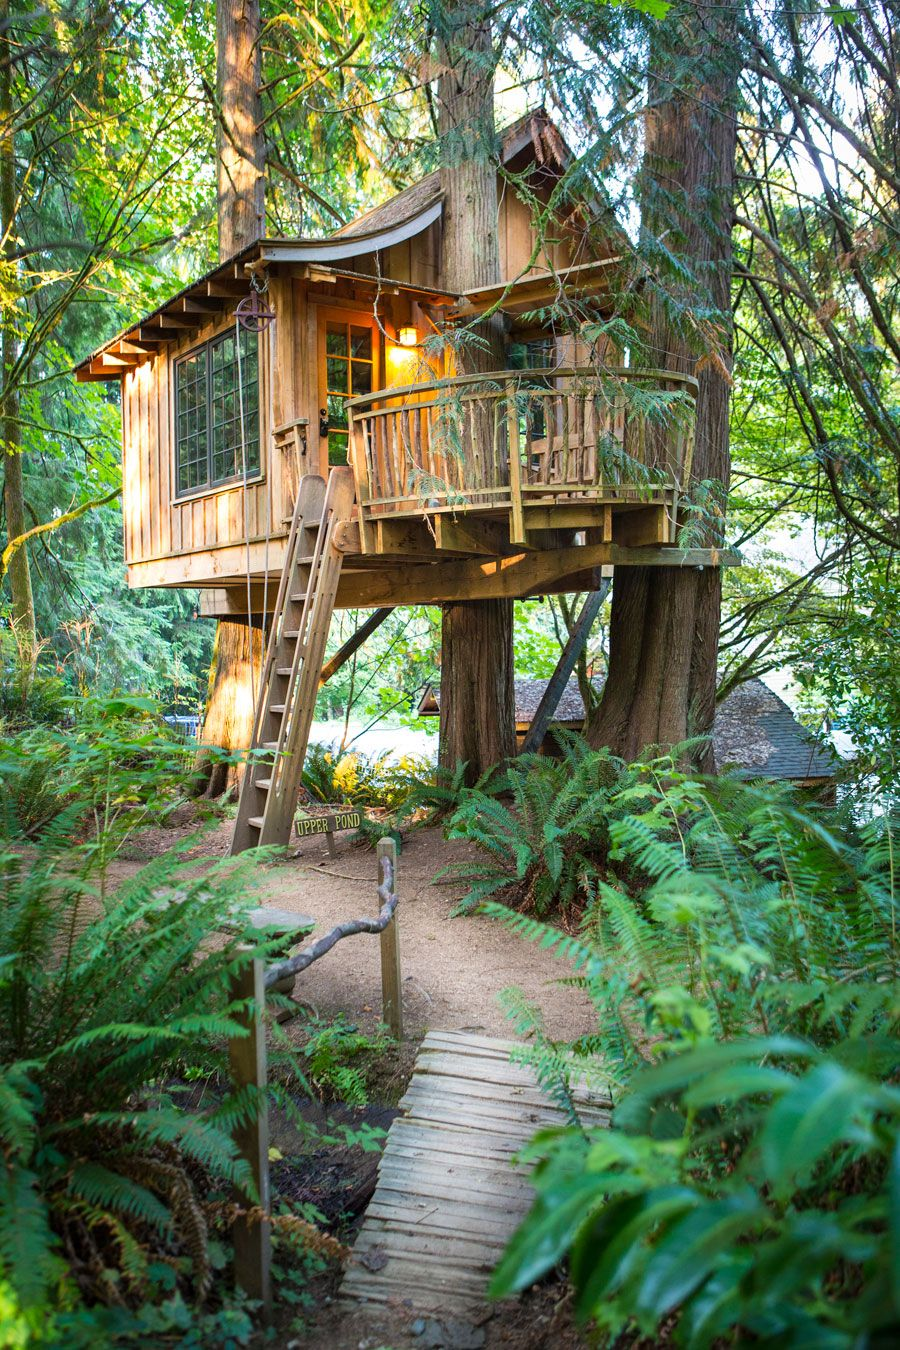 Tree House Point in Issaquah, WA built by Nelson